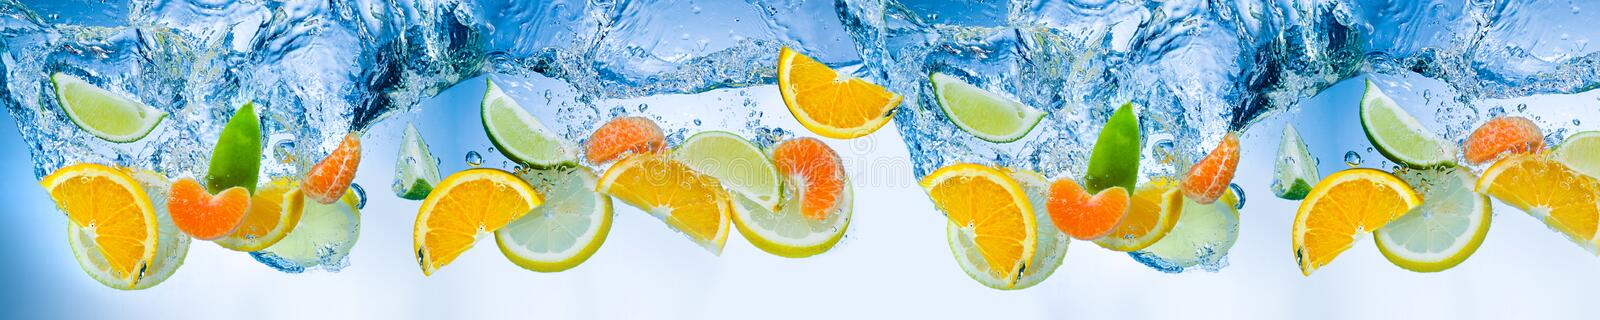 Fruits in the water stock image